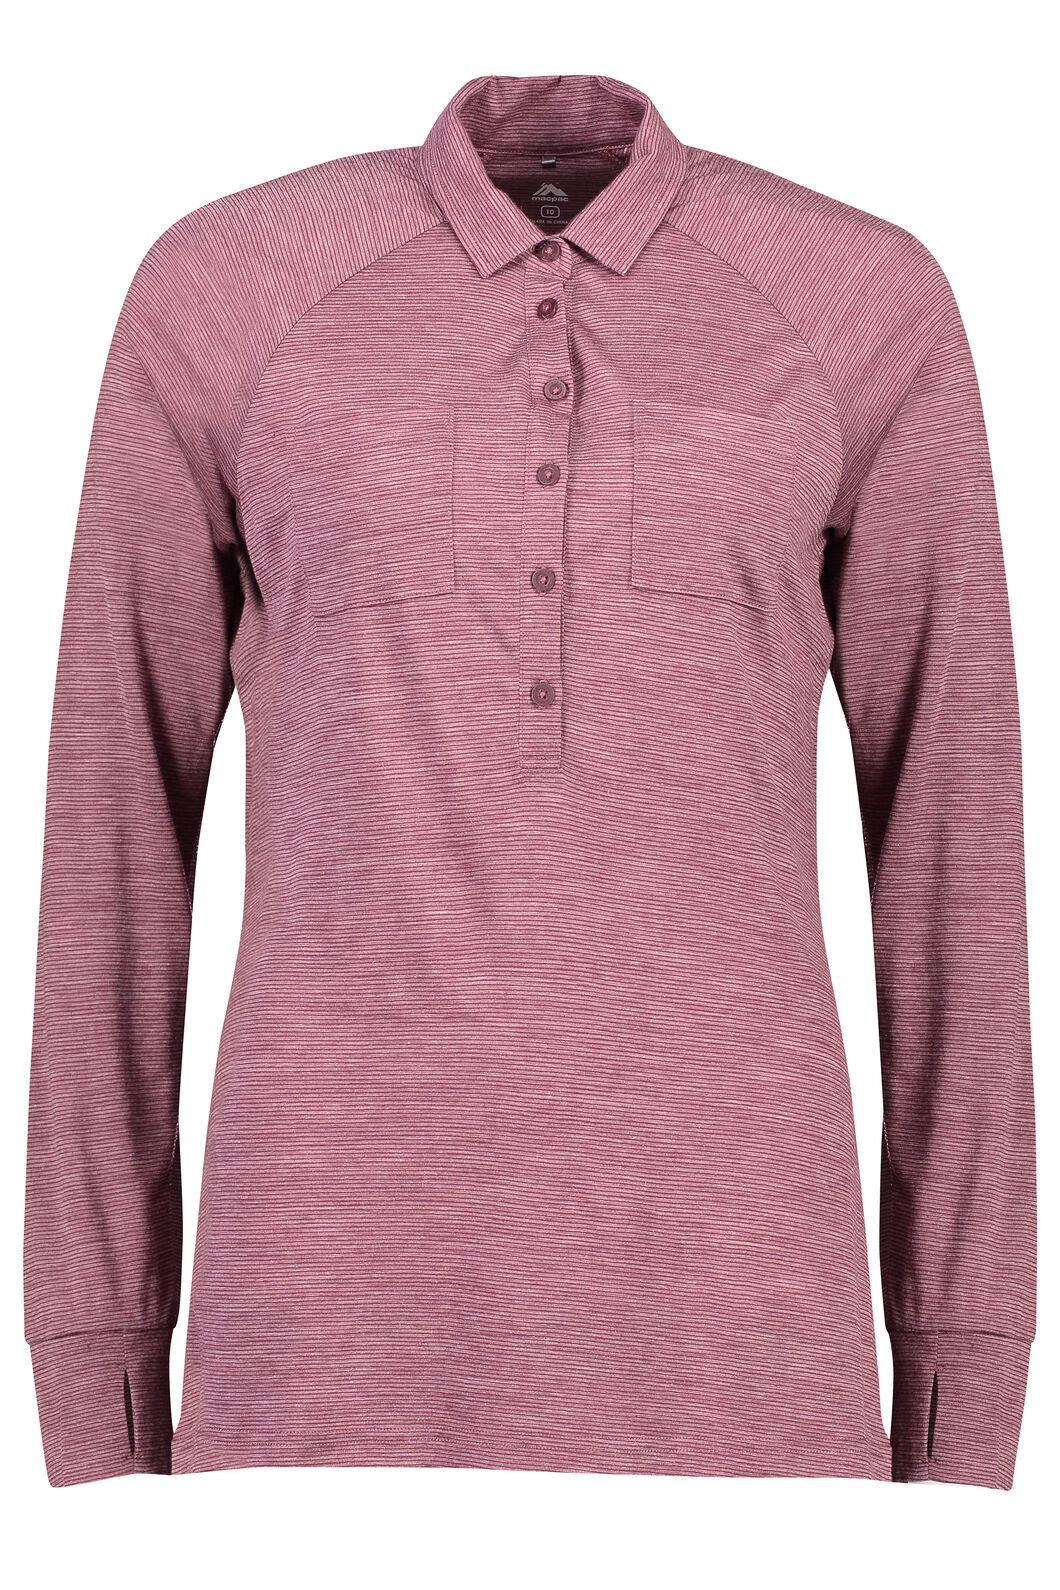 Macpac Rove Merino Blend Long Sleeve - Women's, Fig Stripe, hi-res